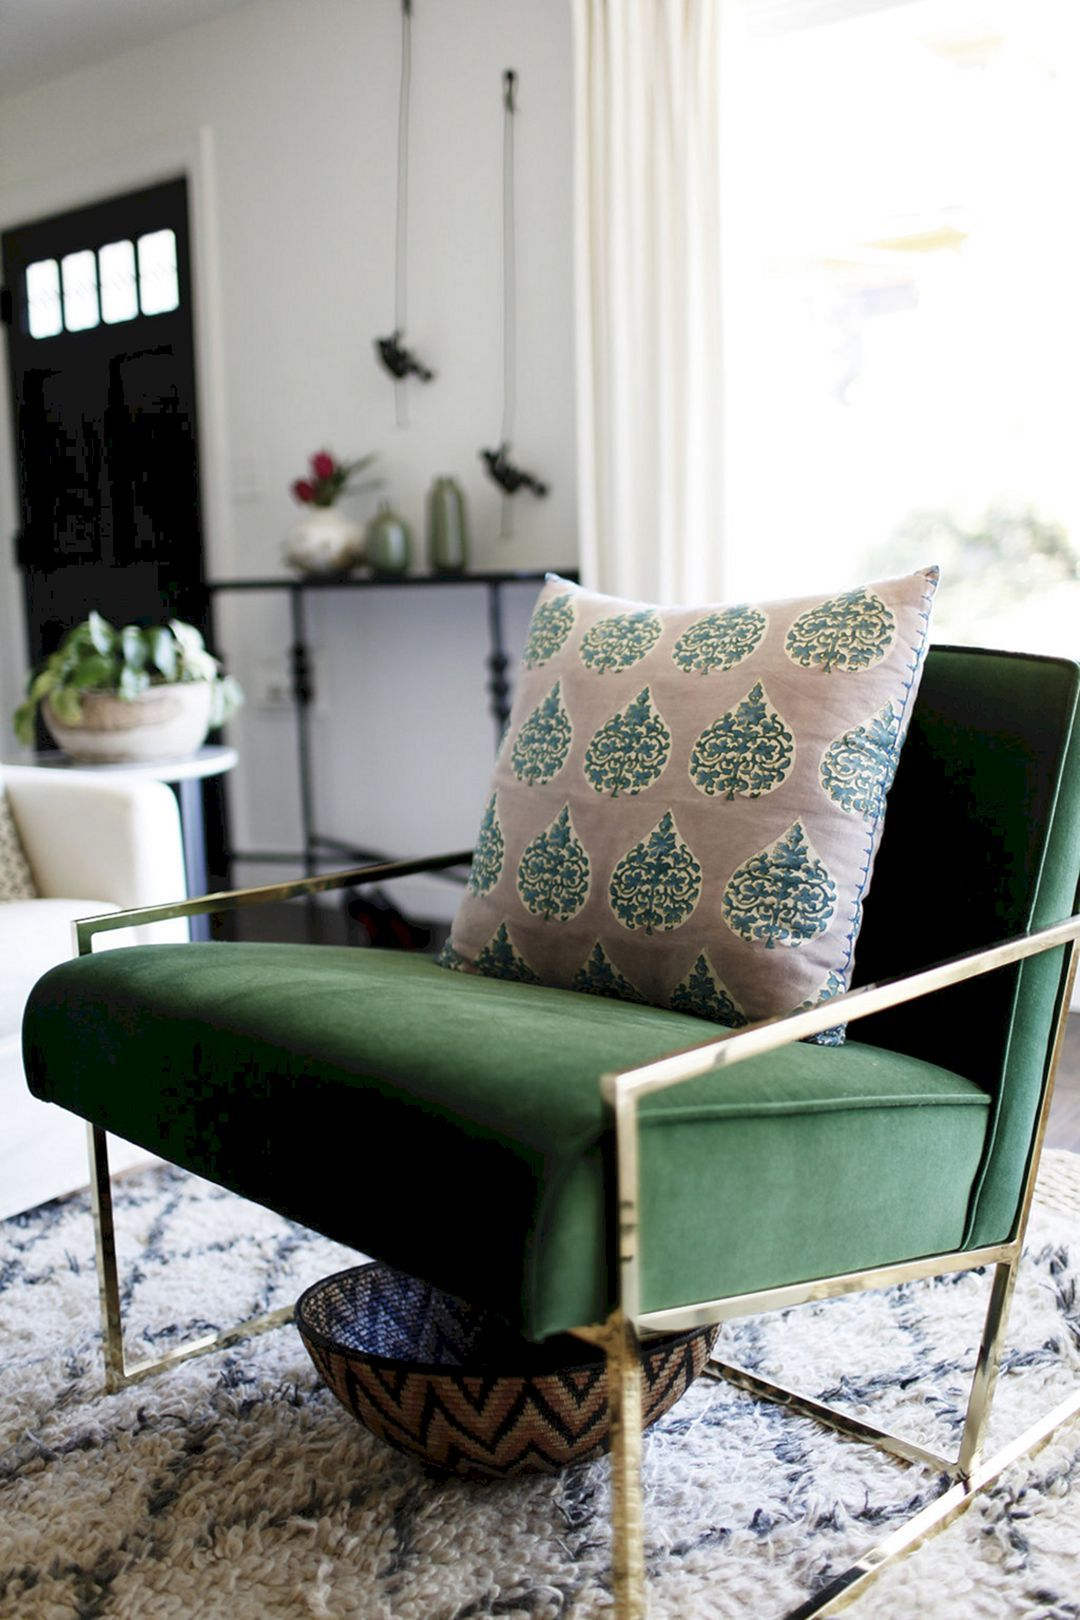 45+ Beautiful Accents Interior Design Ideas You Have To